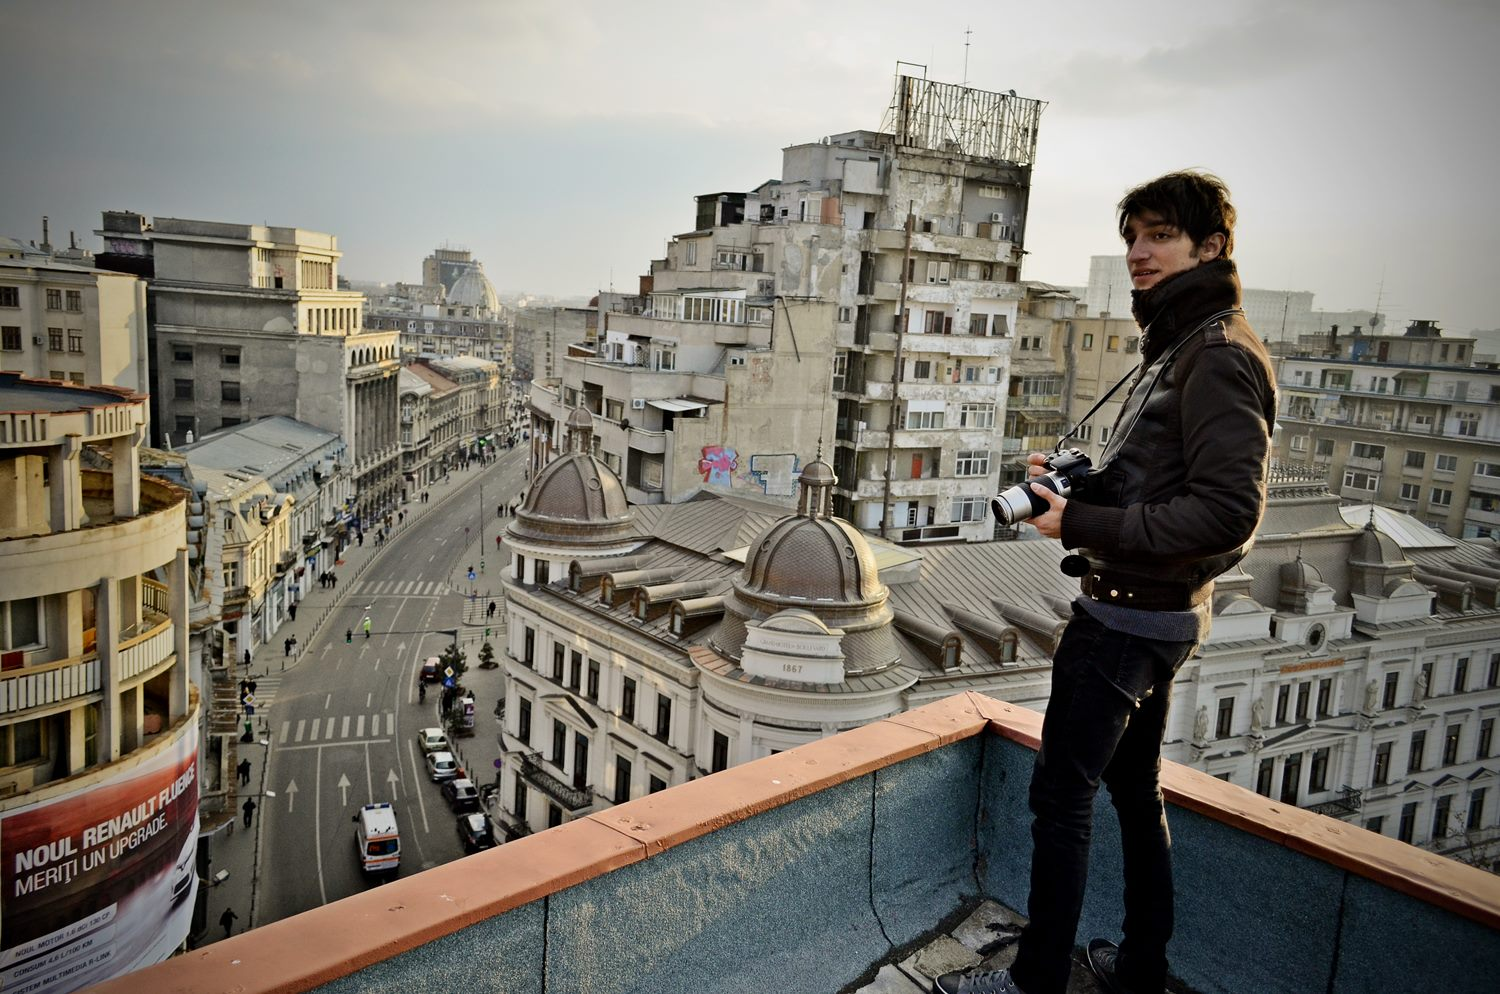 Urban Explorer Captures the Beauty of Bucharest